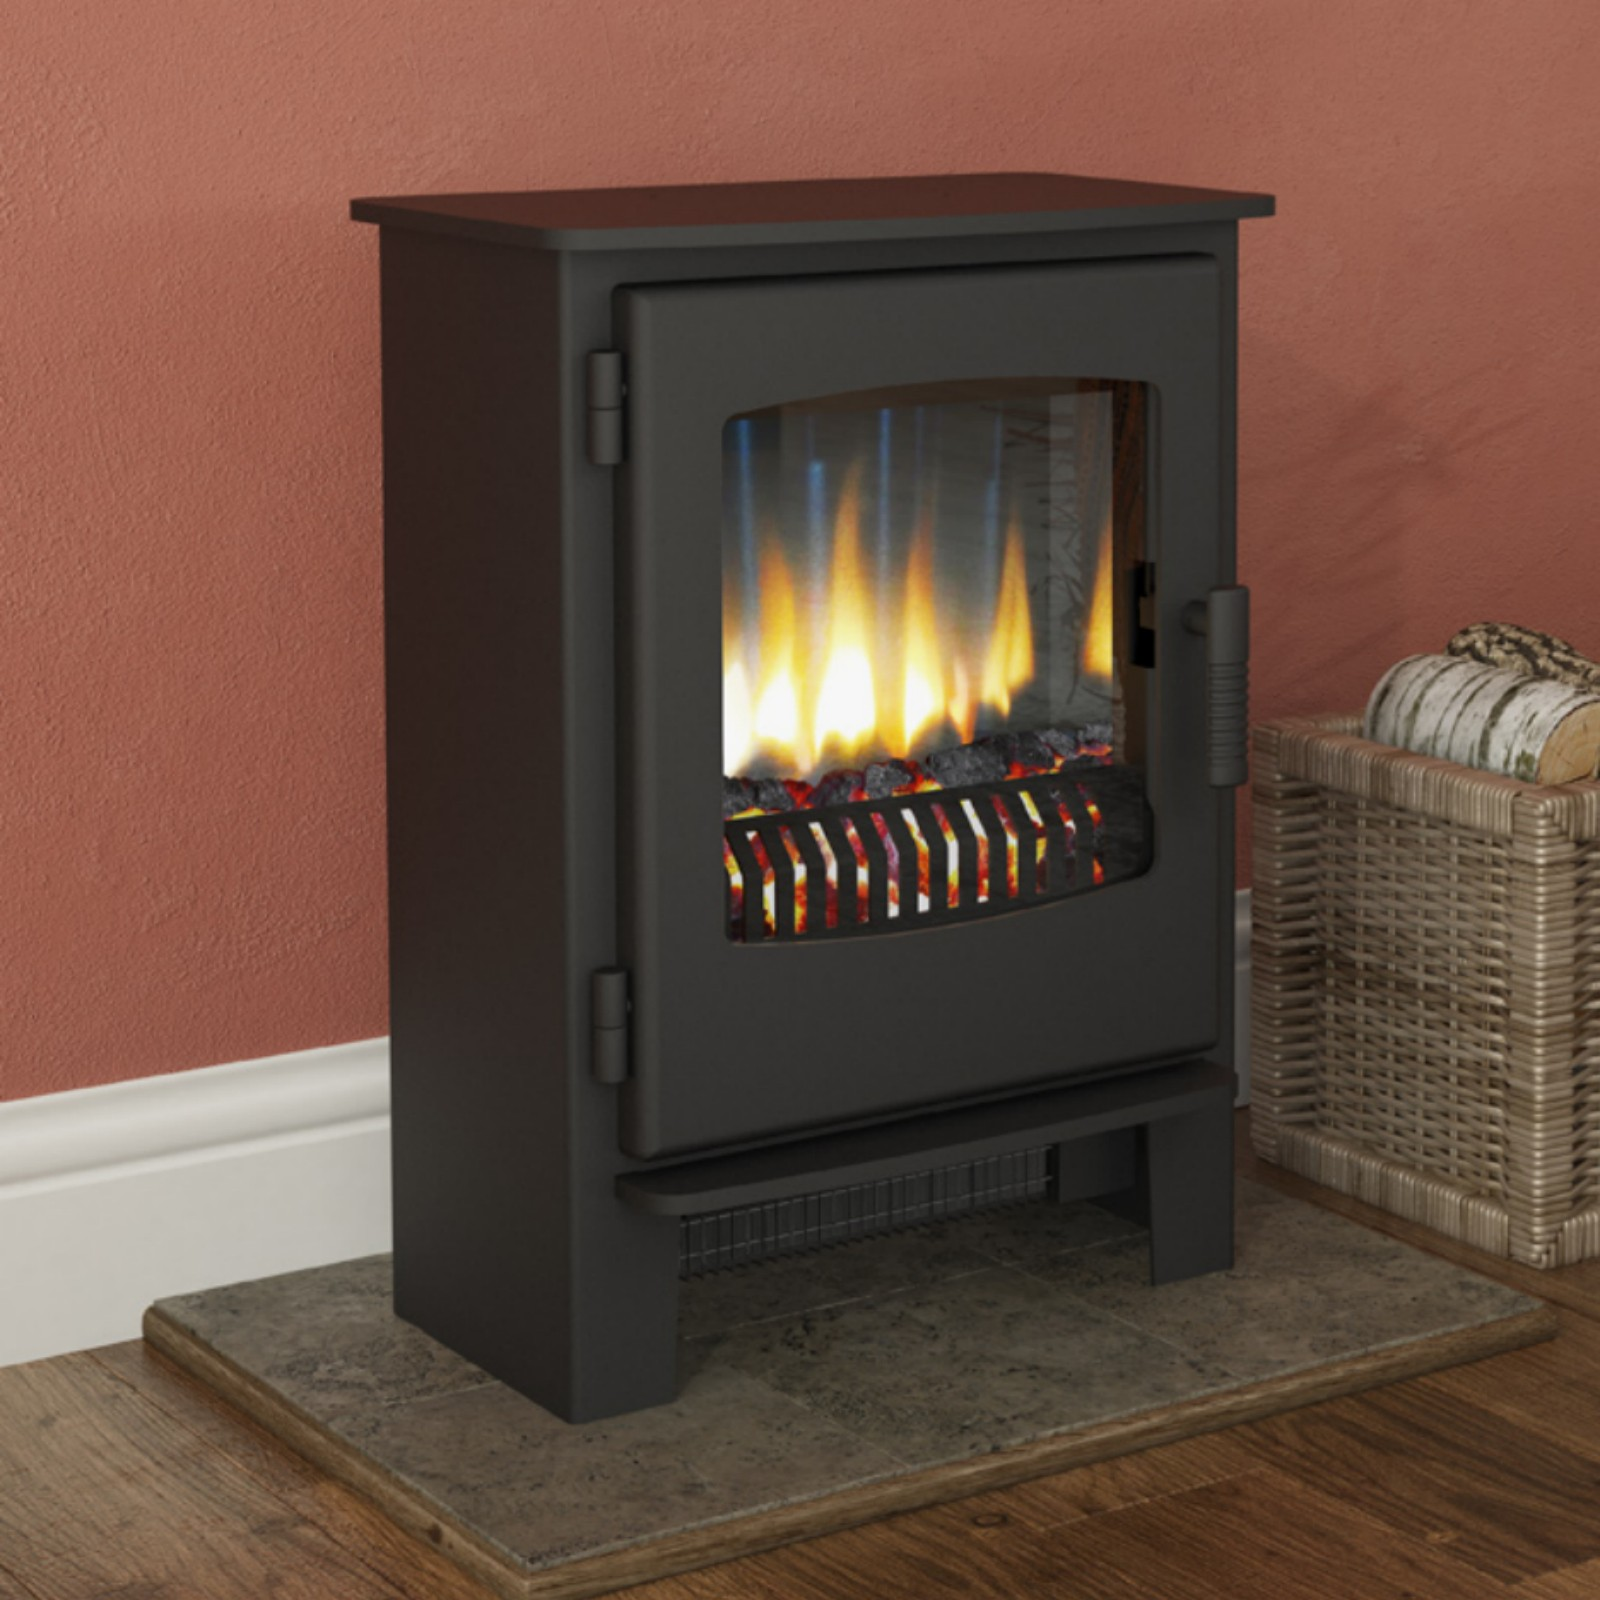 Contemporary Fire Broseley Desire 5 Electric Stove Free Delivery